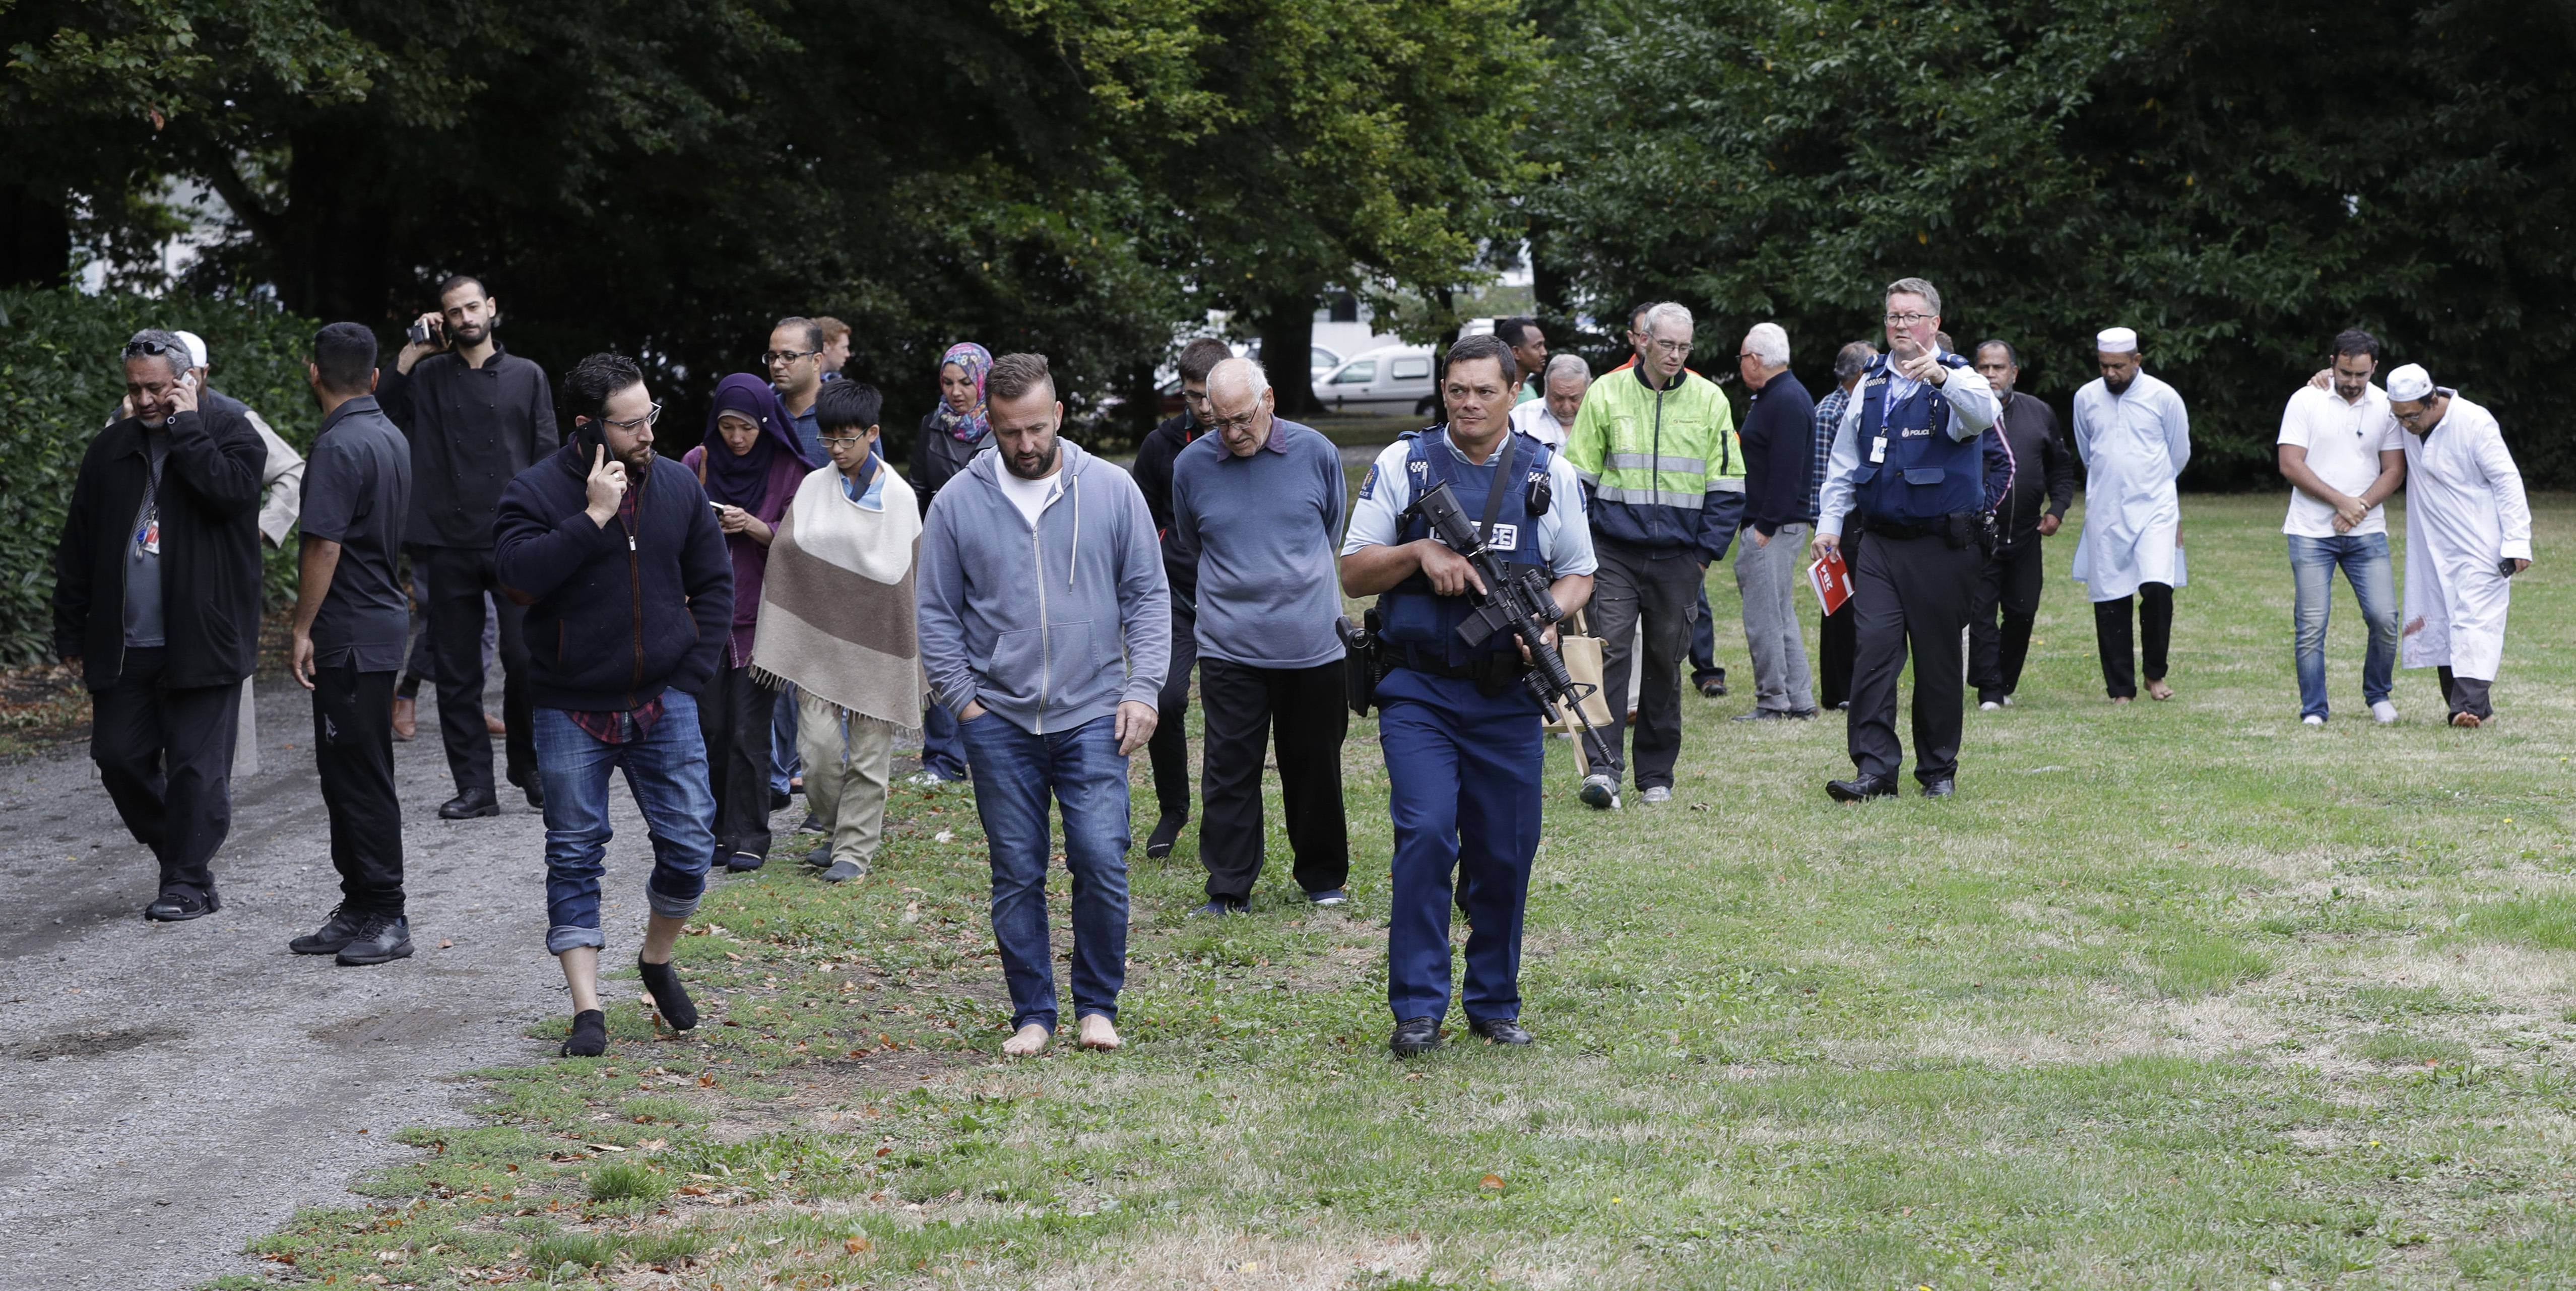 Police escort witnesses away from a mosque Friday in central Christchurch, New Zealand. Multiple people were killed in mass shootings at two mosques full of people attending Friday prayers, as New Zealand police warned people to stay indoors as they tried to determine if more than one gunman was involved.